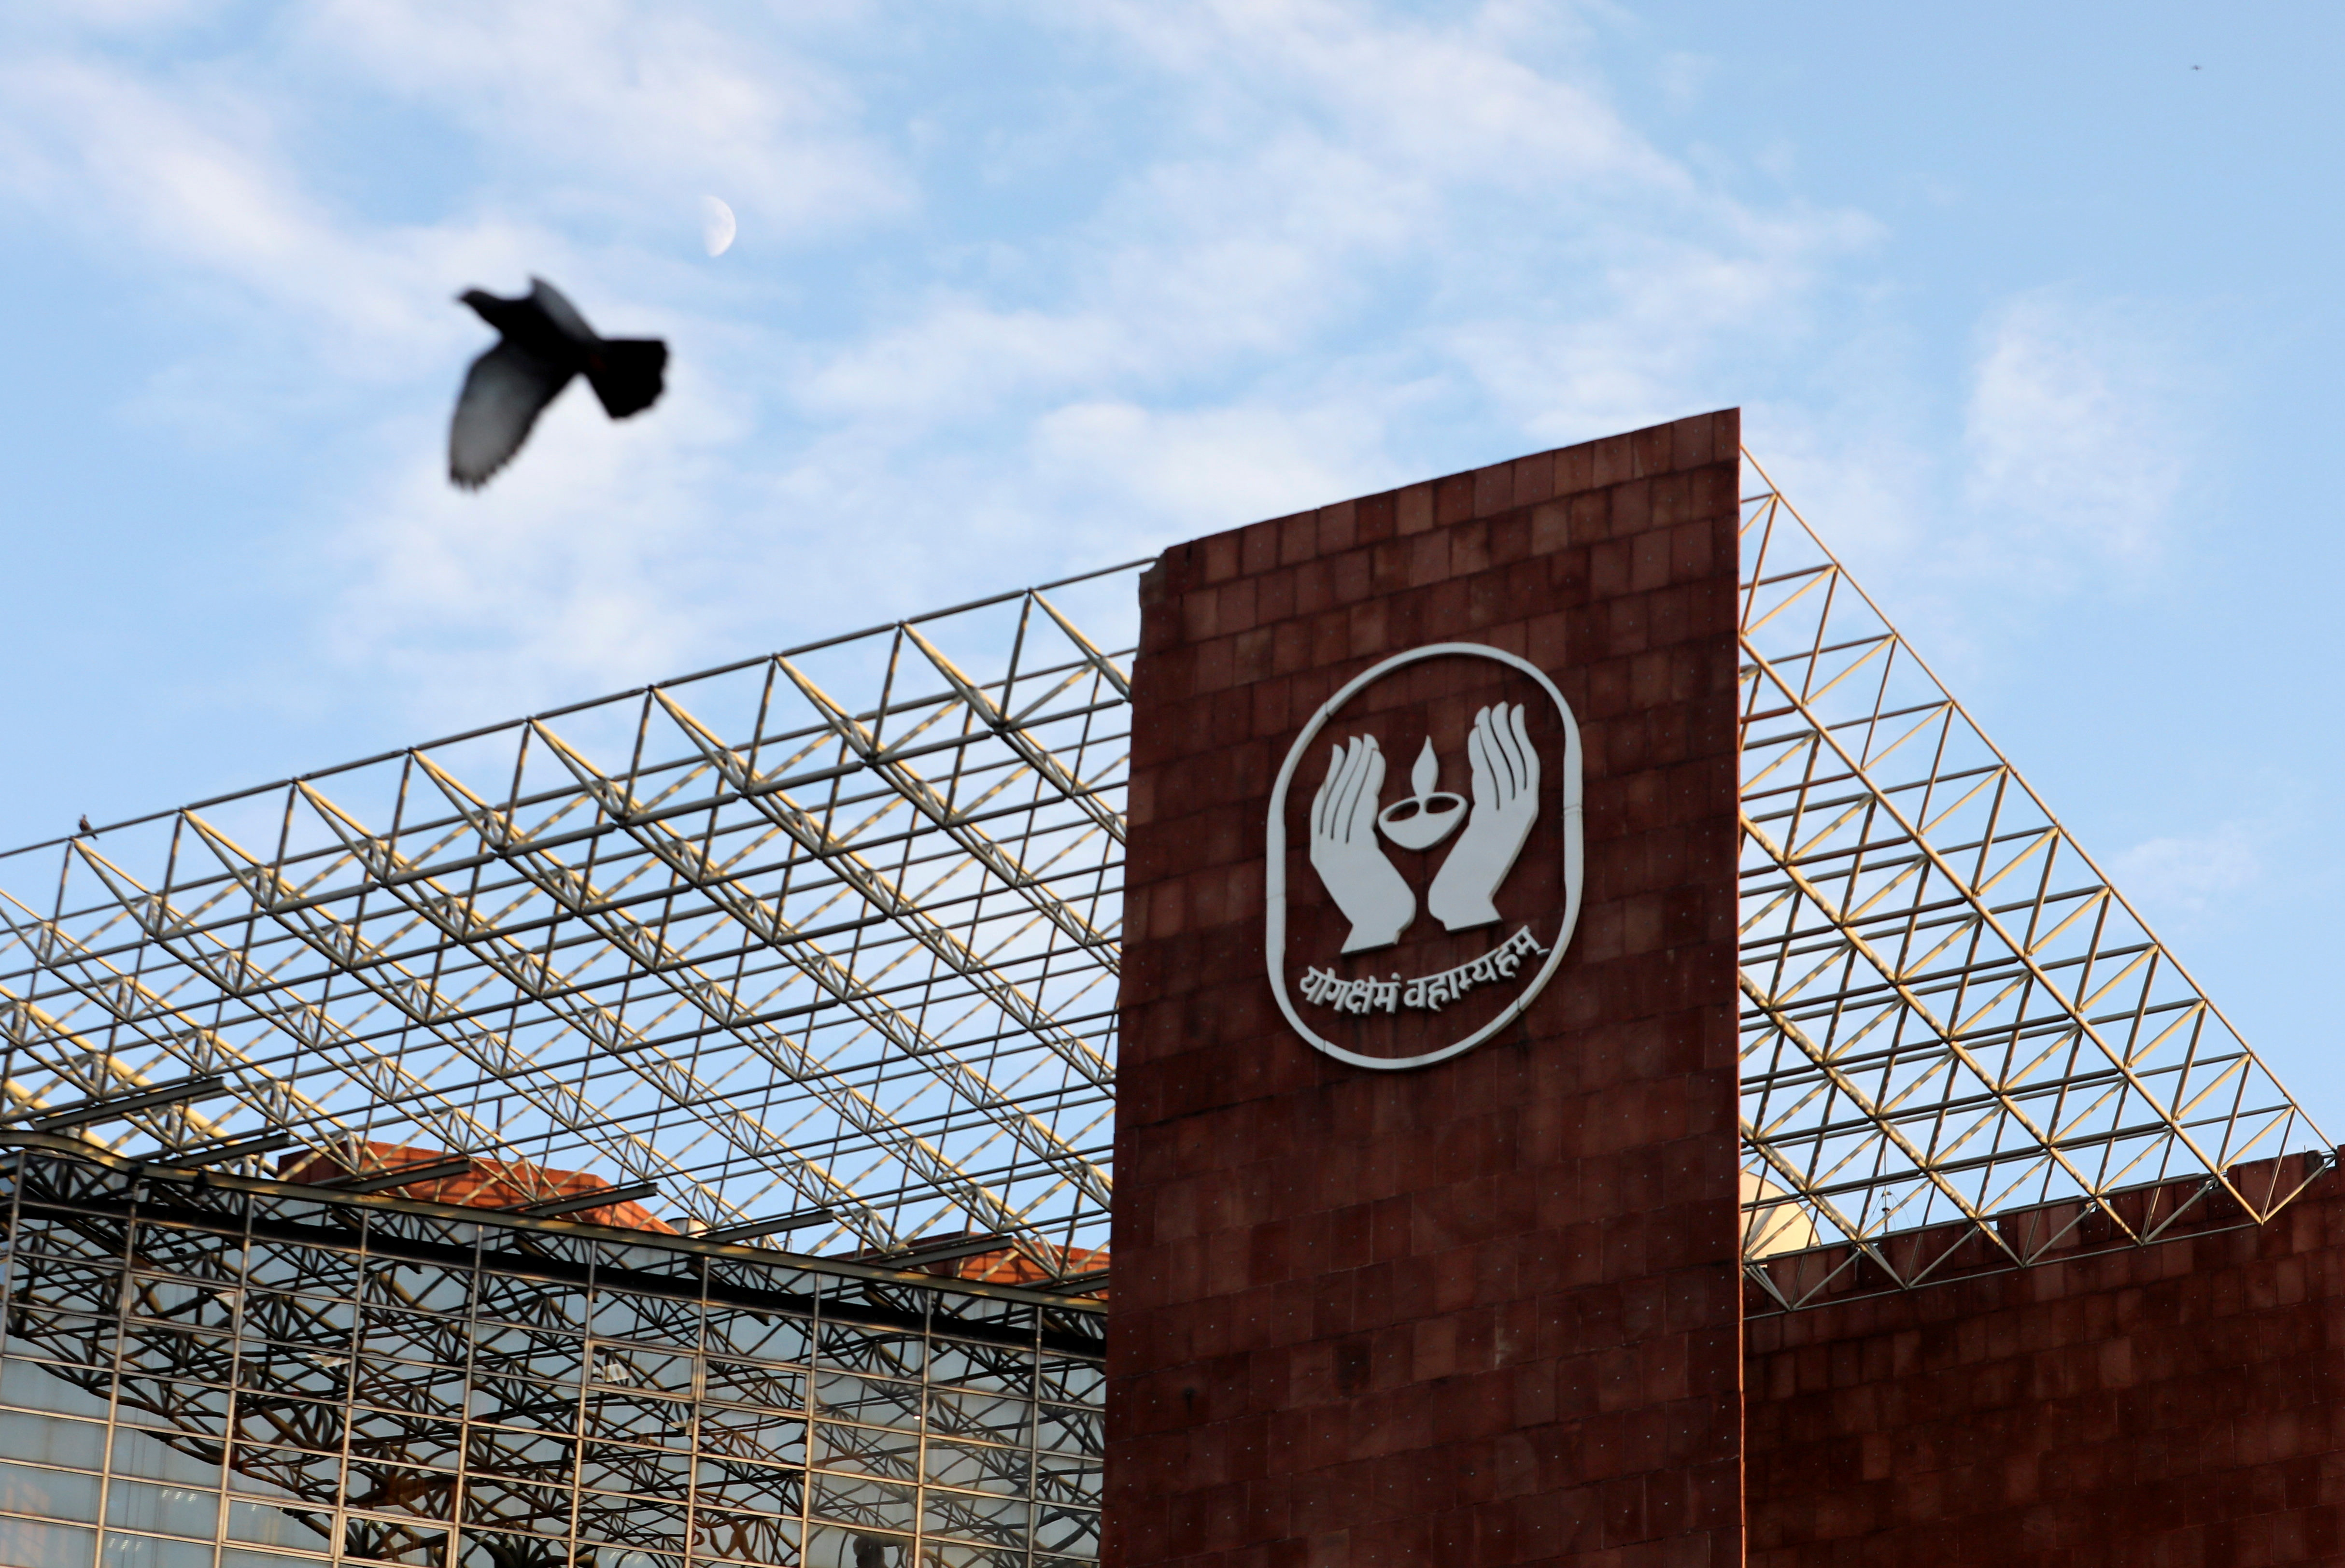 A bird flies past the logo of Life Insurance Corporation of India (LIC) at one of its offices in New Delhi, India September 14, 2021.  REUTERS/Anushree Fadnavis/File Photo